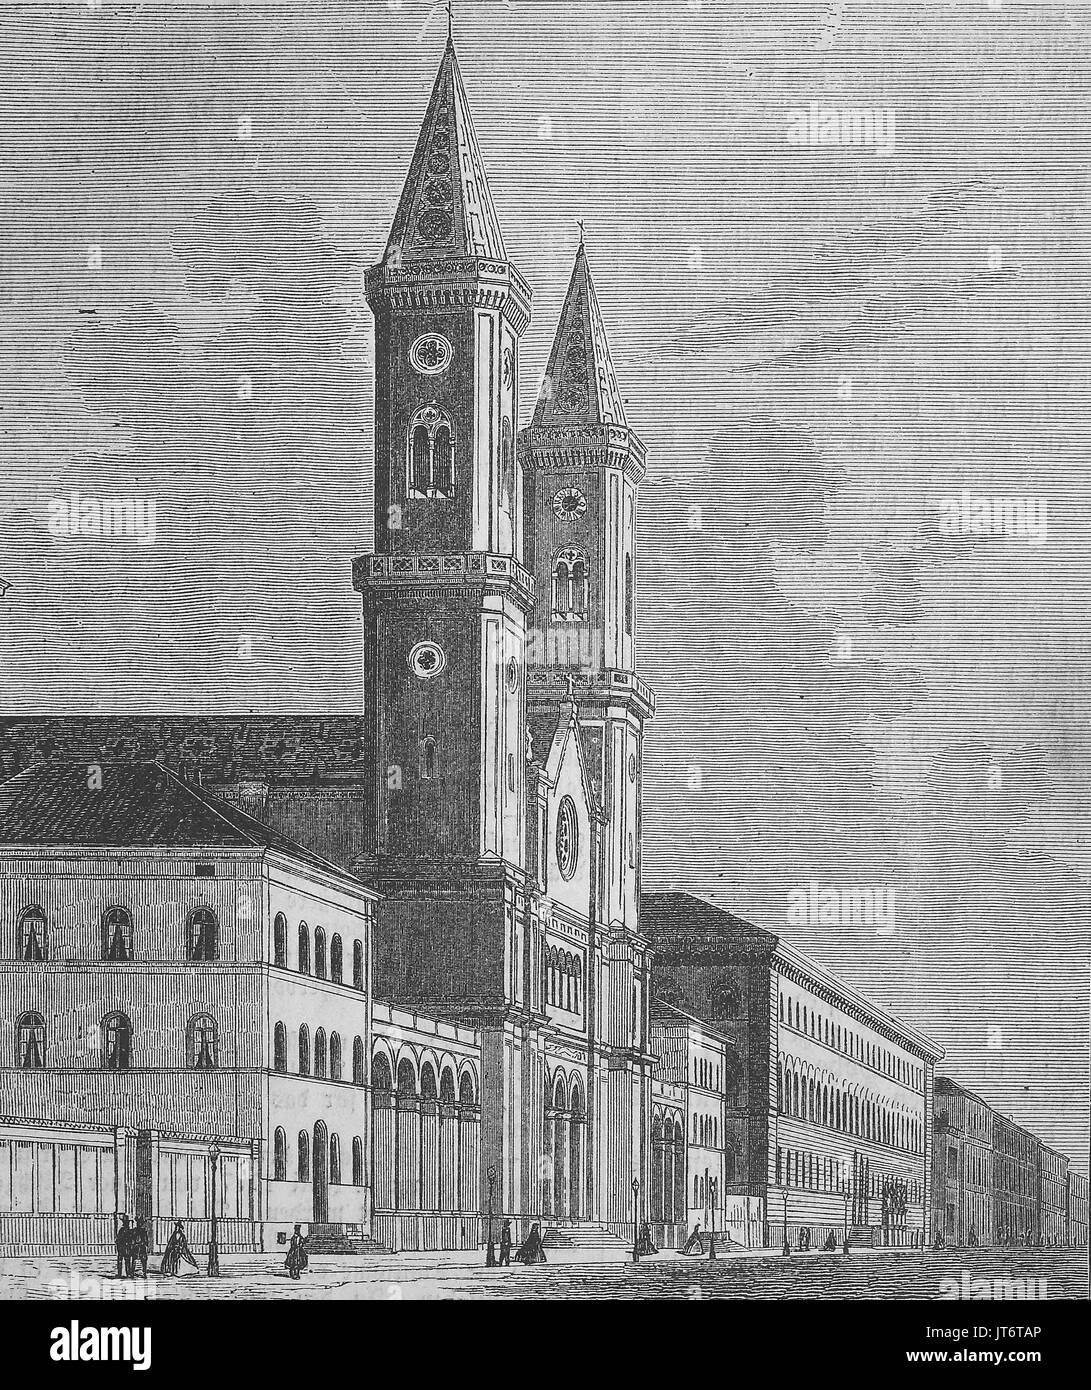 church Ludwigskirche at Munich, Bavaria, Germany, Digital improved reproduction of an image published between 1880 - 1885 - Stock Image